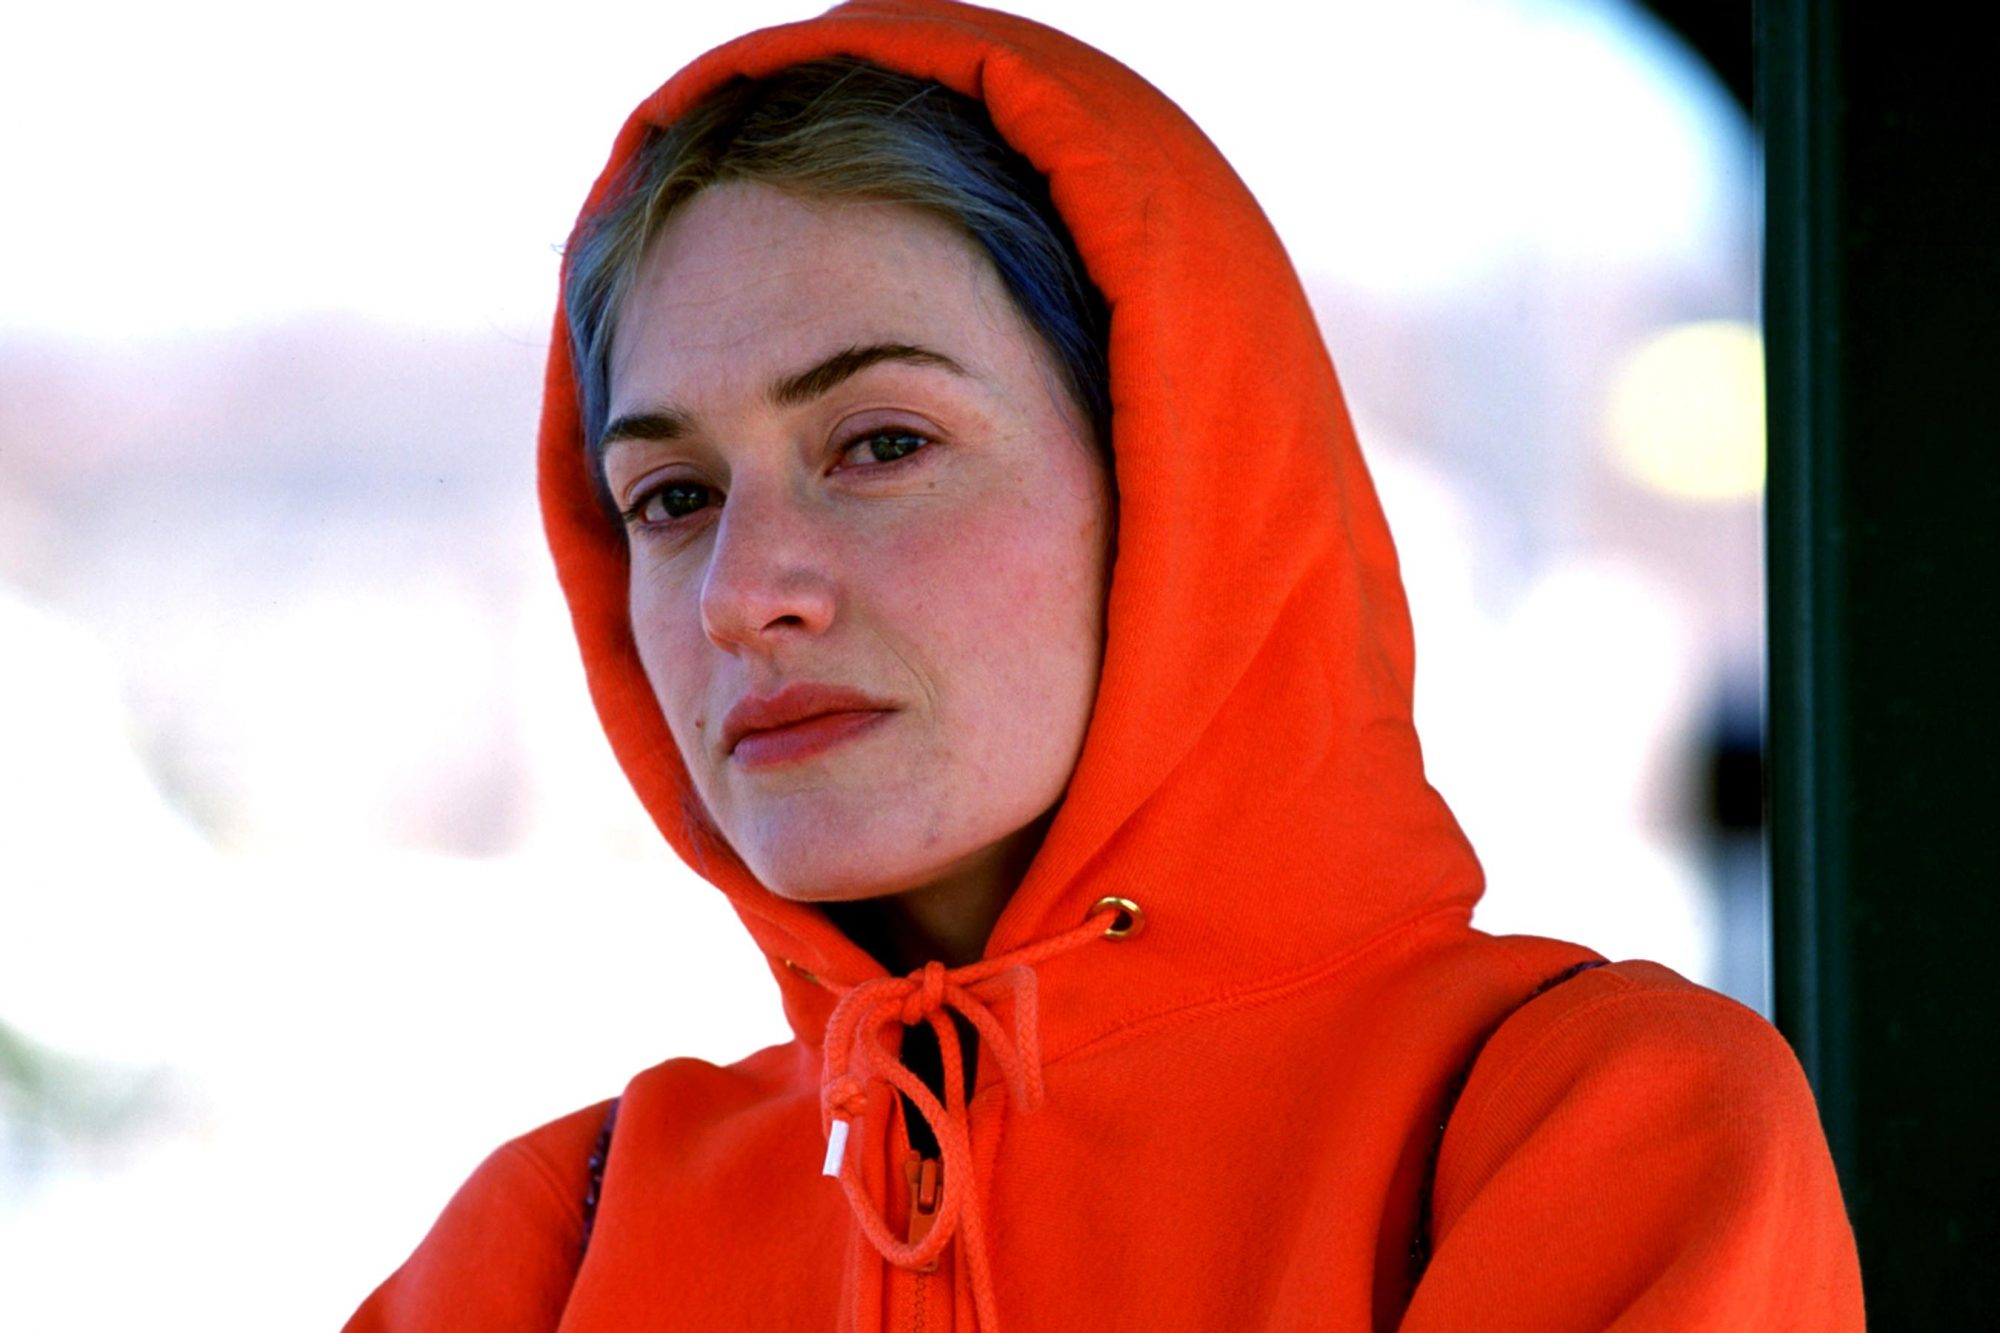 ETERNAL SUNSHINE OF THE SPOTLESS MIND, Kate Winslet, 2004, (c) Focus Features/courtesy Everett Colle